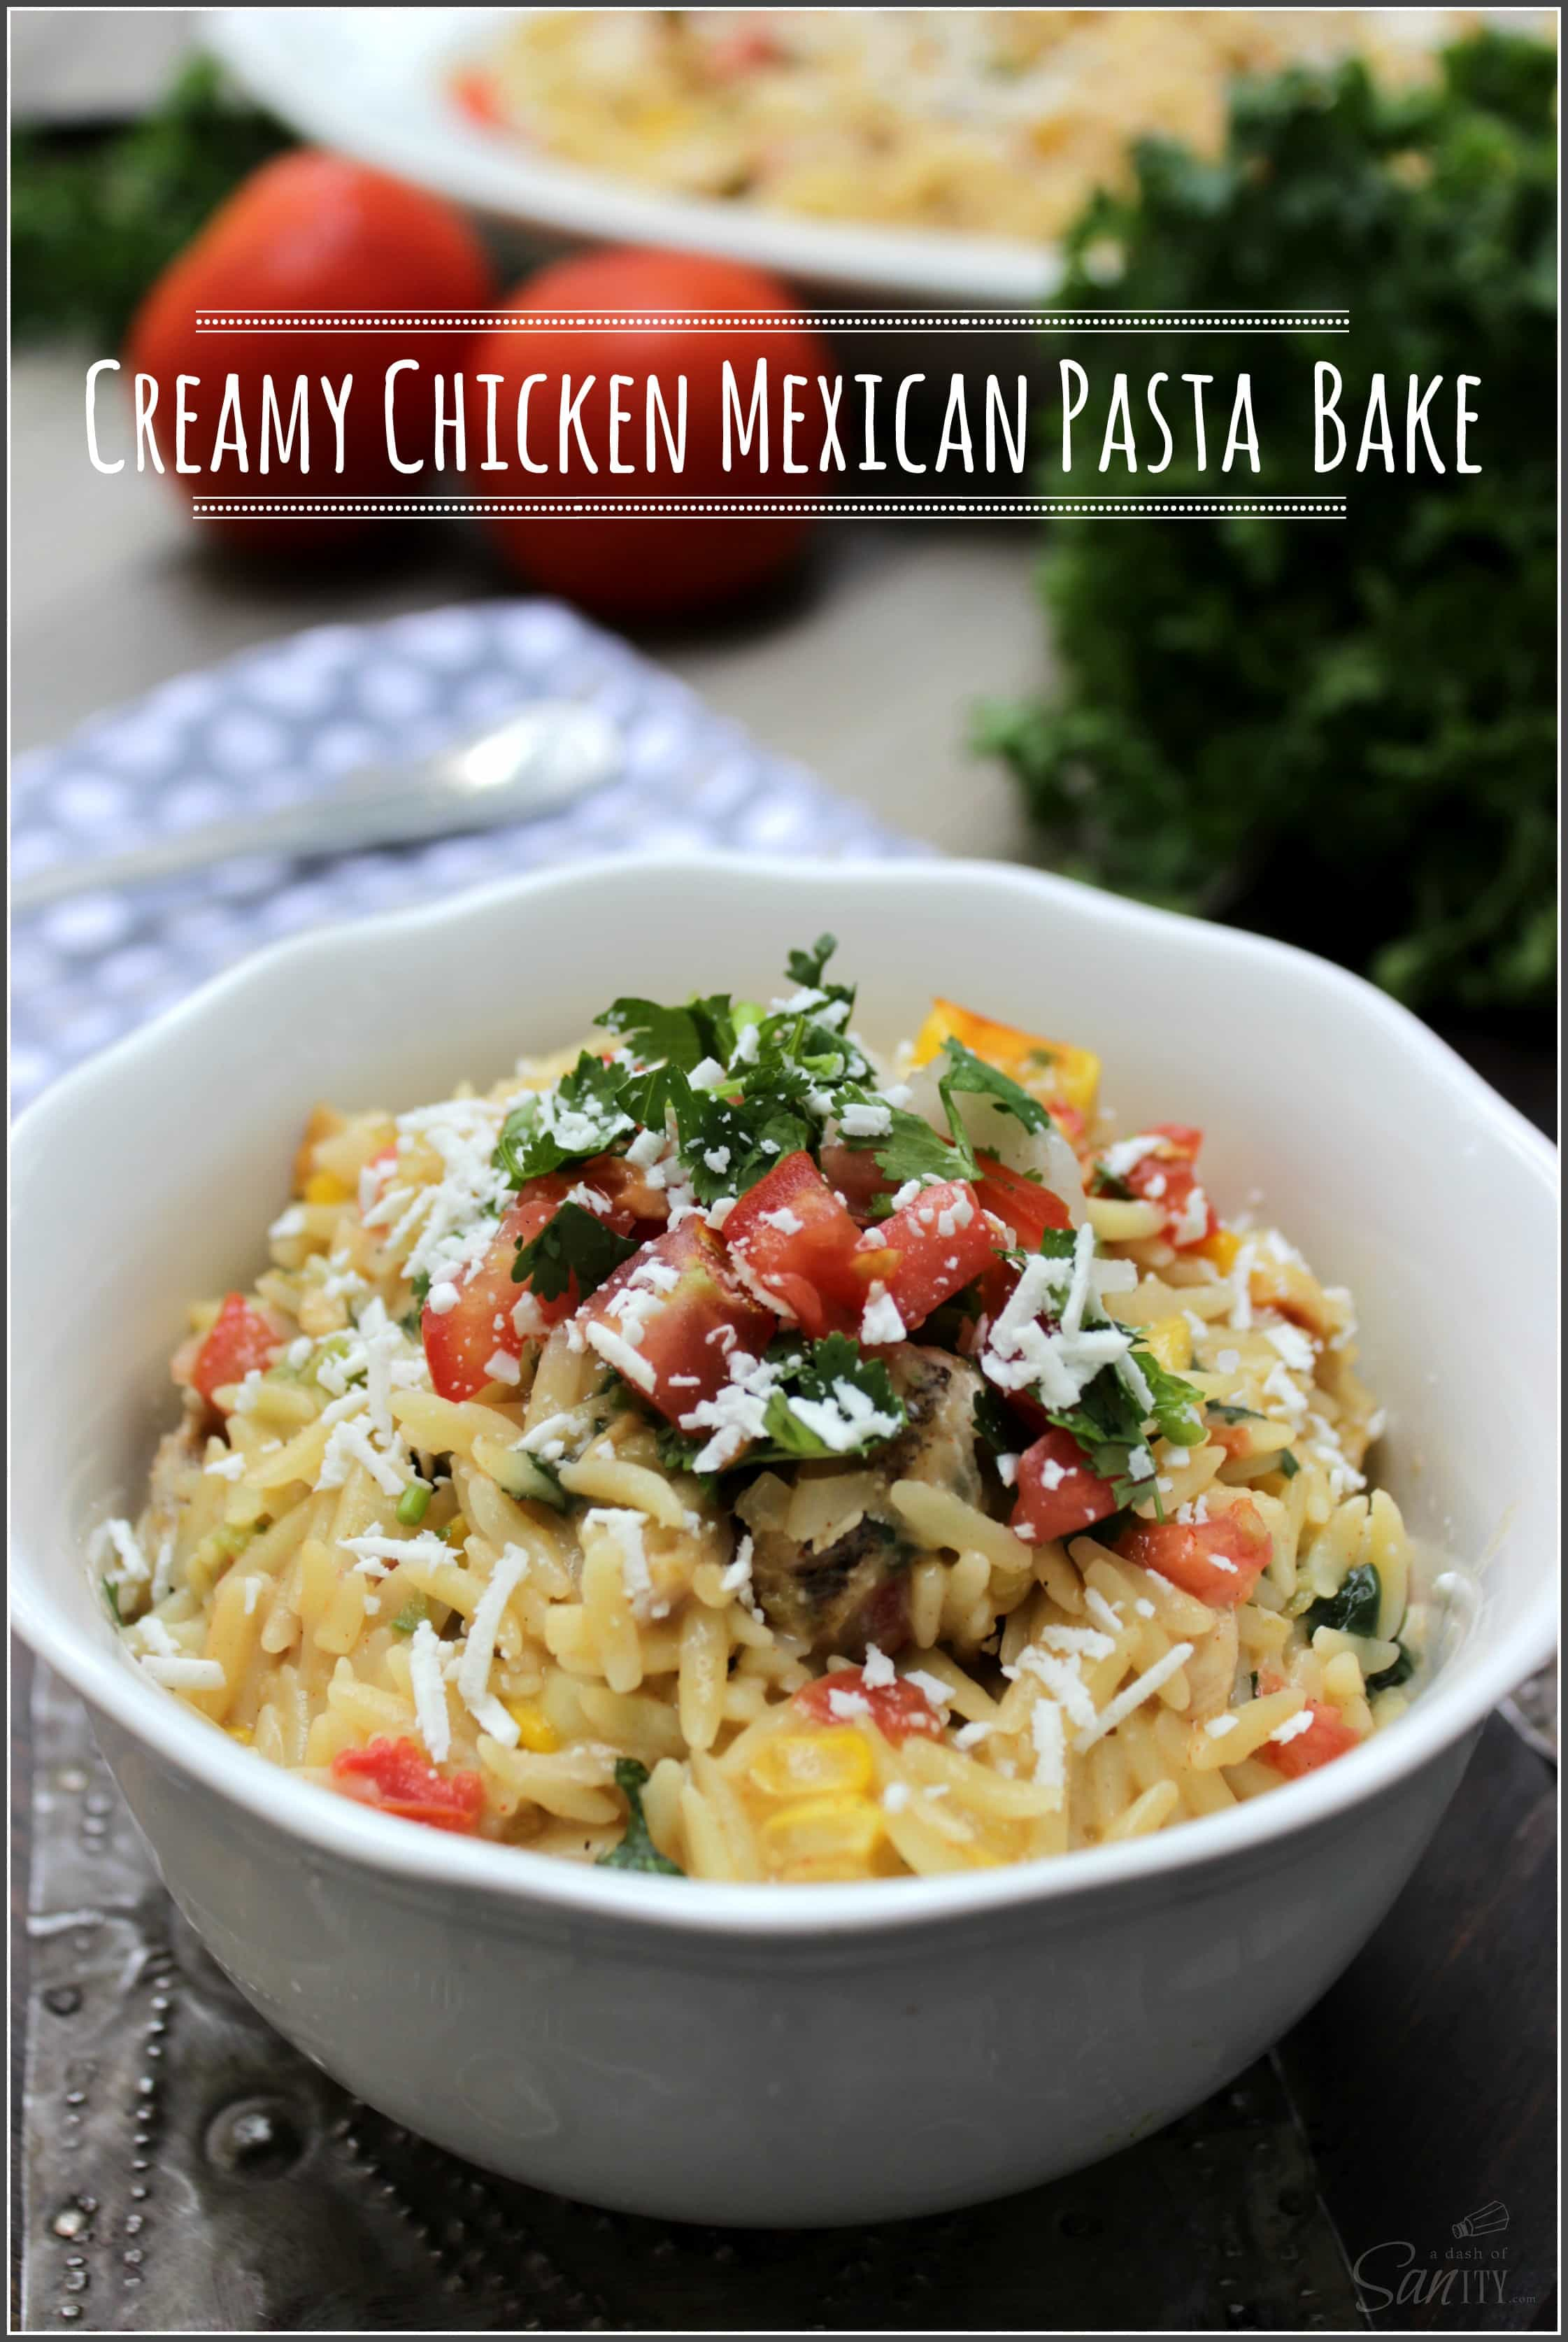 Creamy pasta dish made with fresh vegetables, herbs, and chicken ...